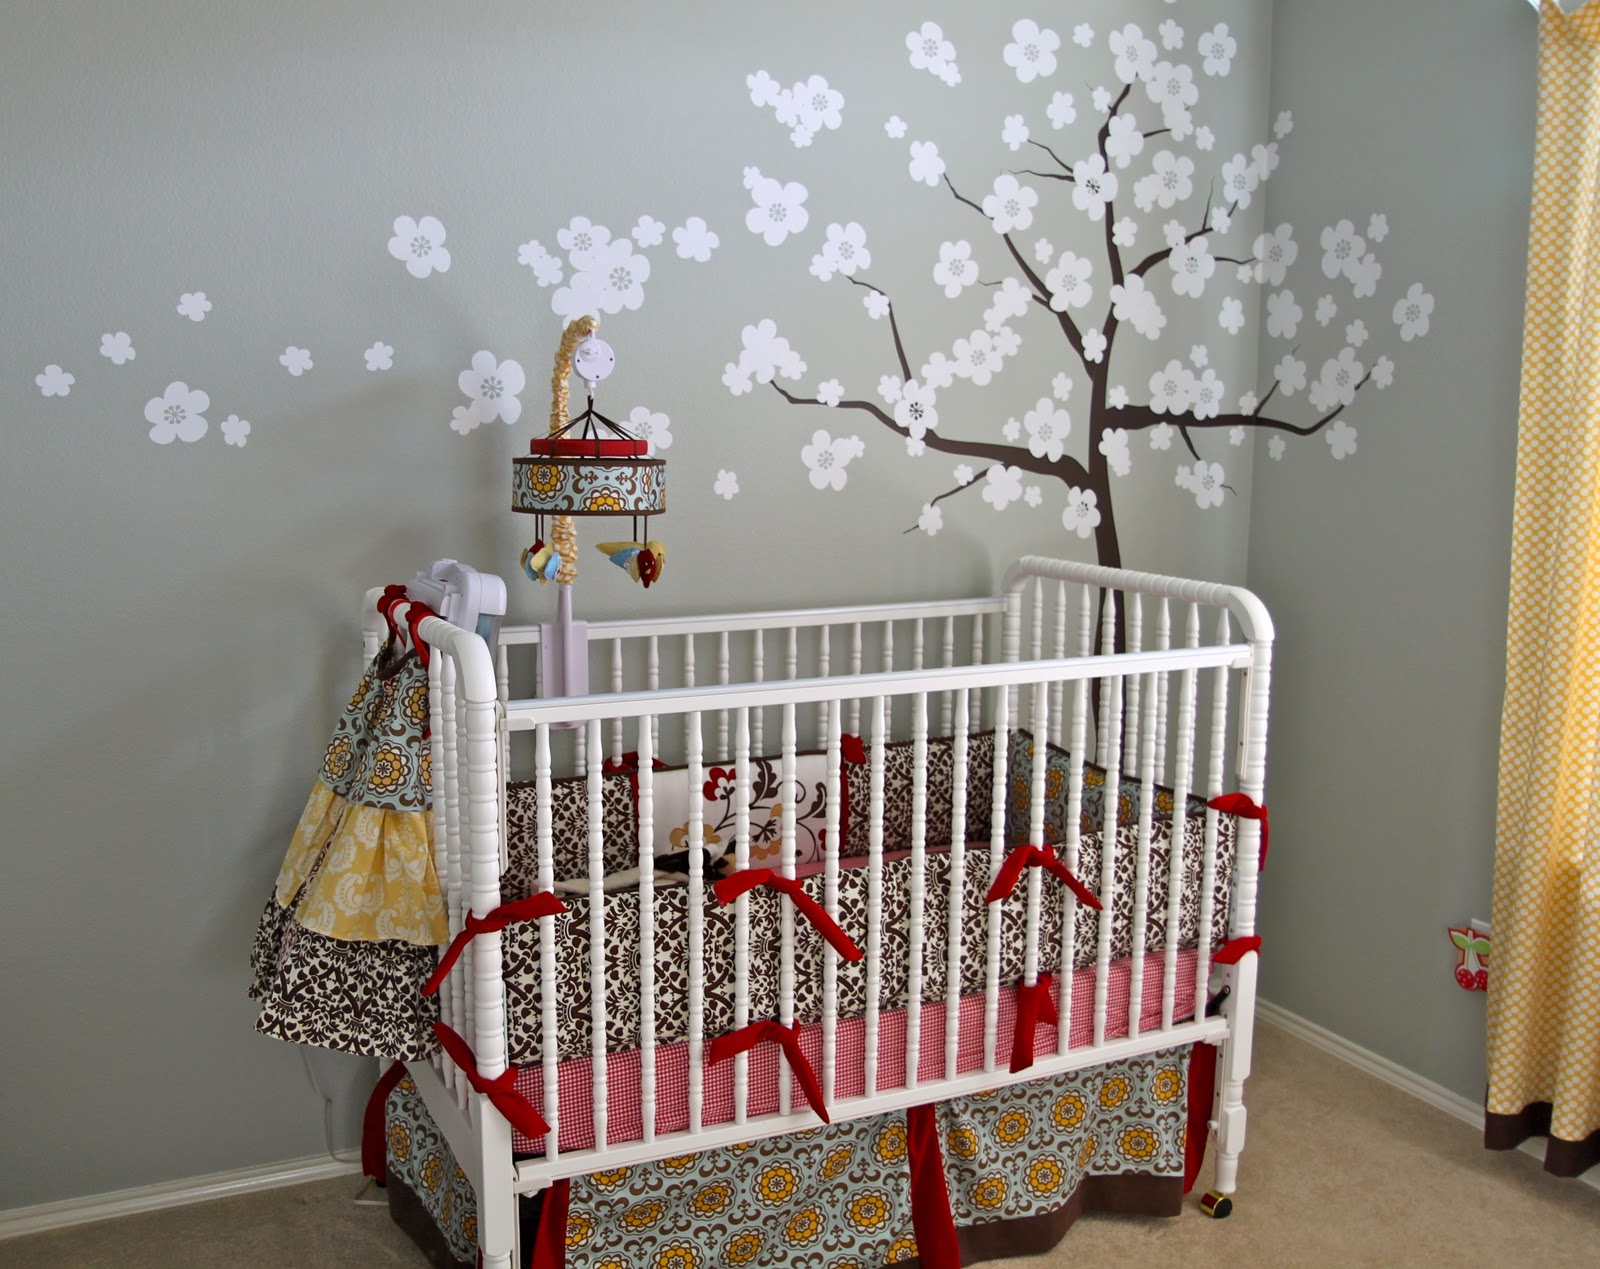 Baby nursery it 39 s quirky and so cute design dazzle for Baby room decoration